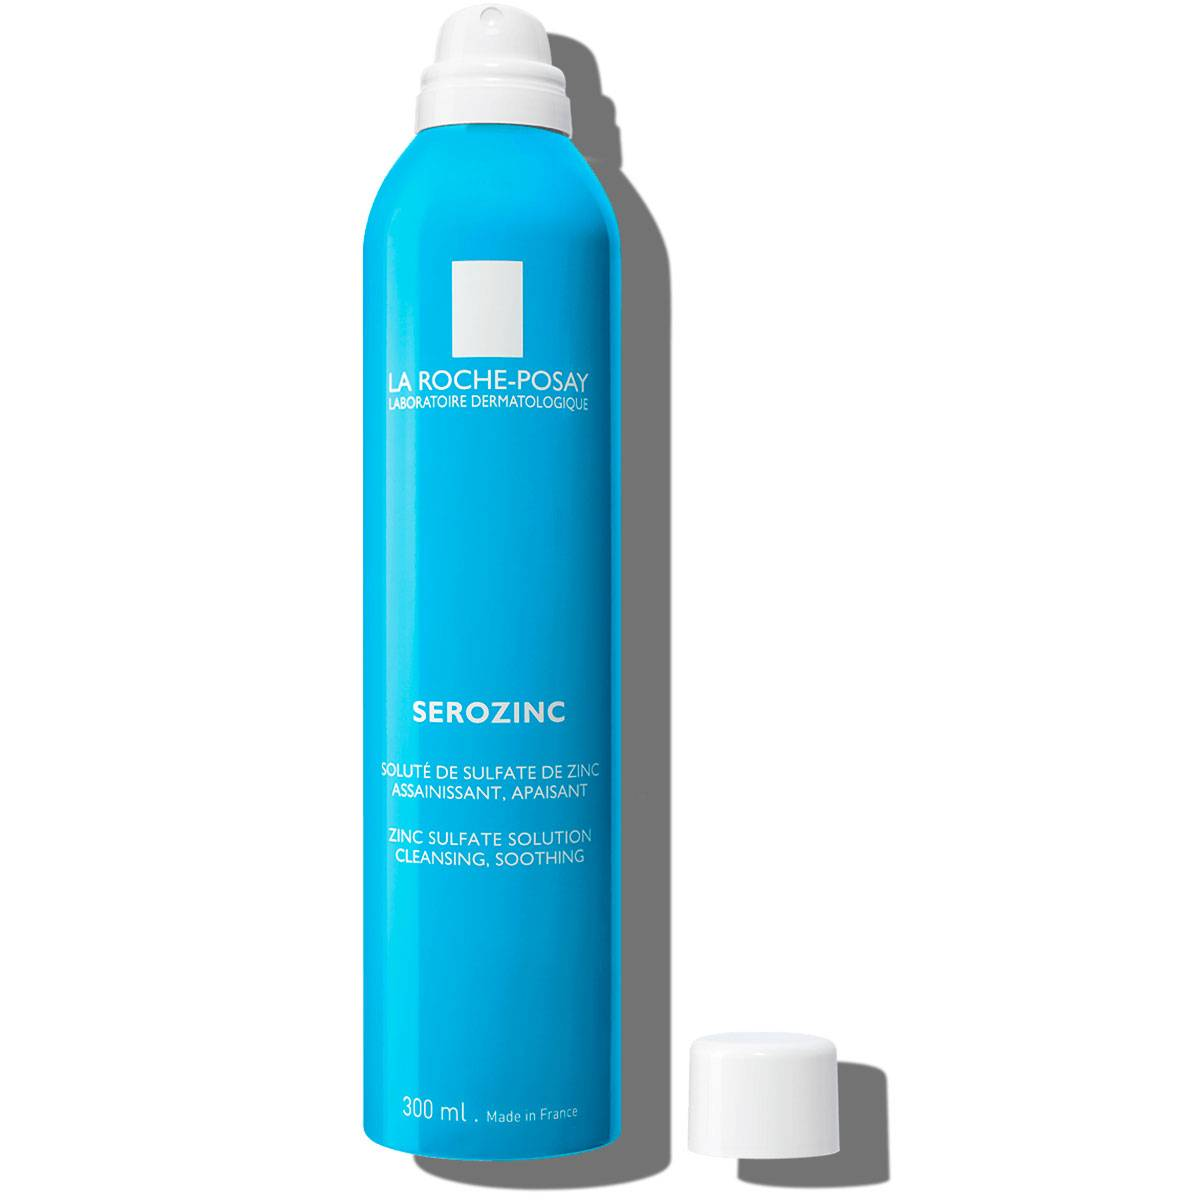 Serozinc 50ml Zinc Sulfate Soothing Cleansing Solution